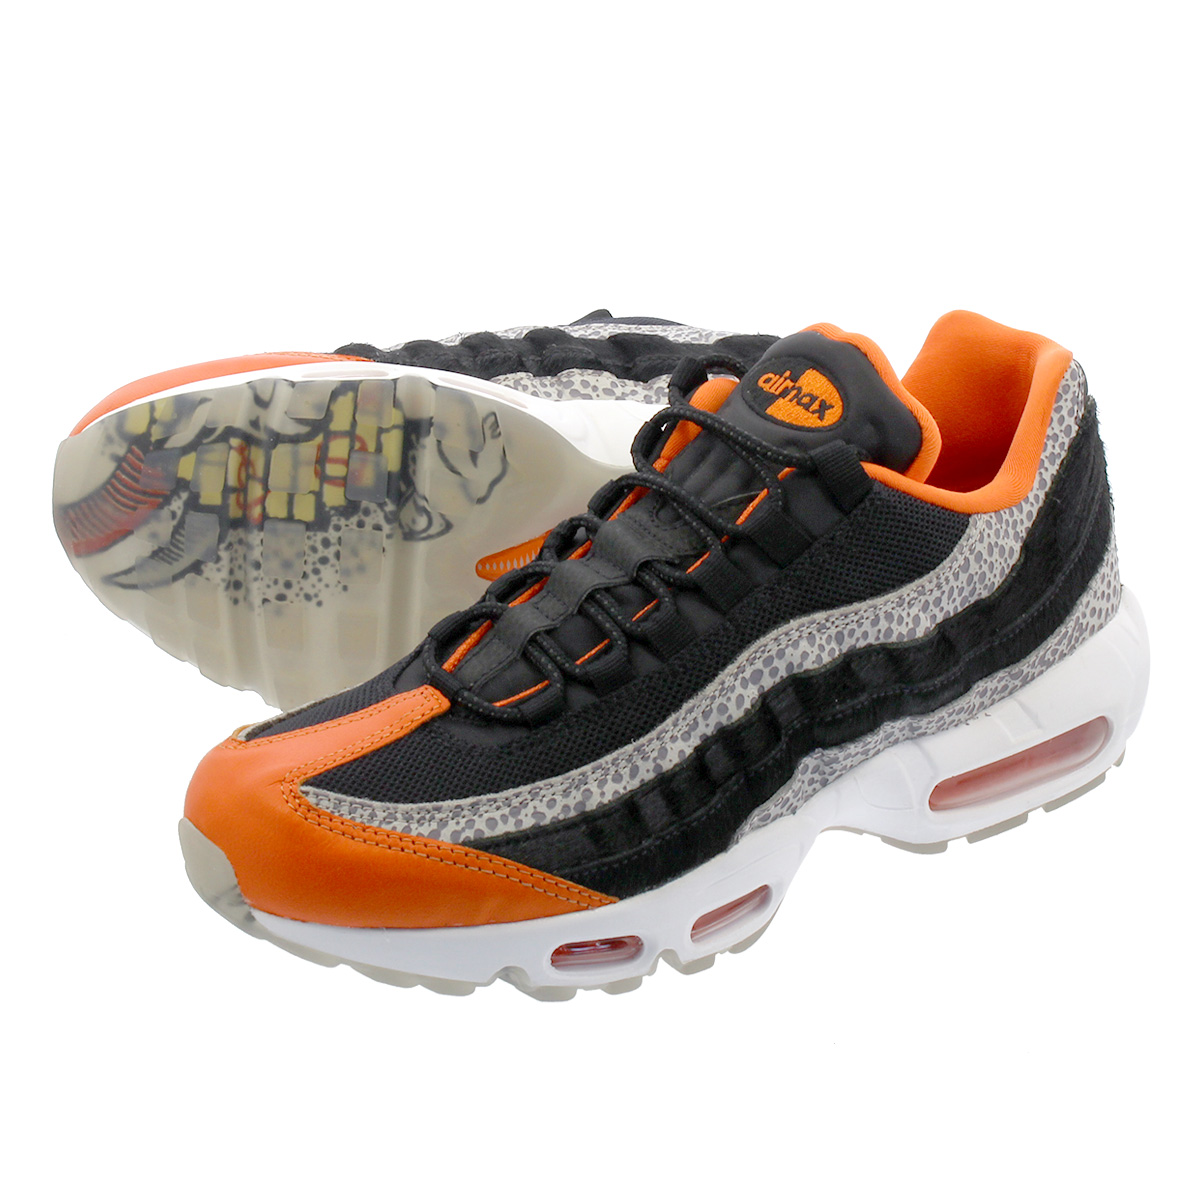 c7fc55c647 NIKE AIR MAX 95 Kie Ney AMAX 95 CHAMPAGNE/SAFETY ORANGE/SPORT ROYAL av7014  ...